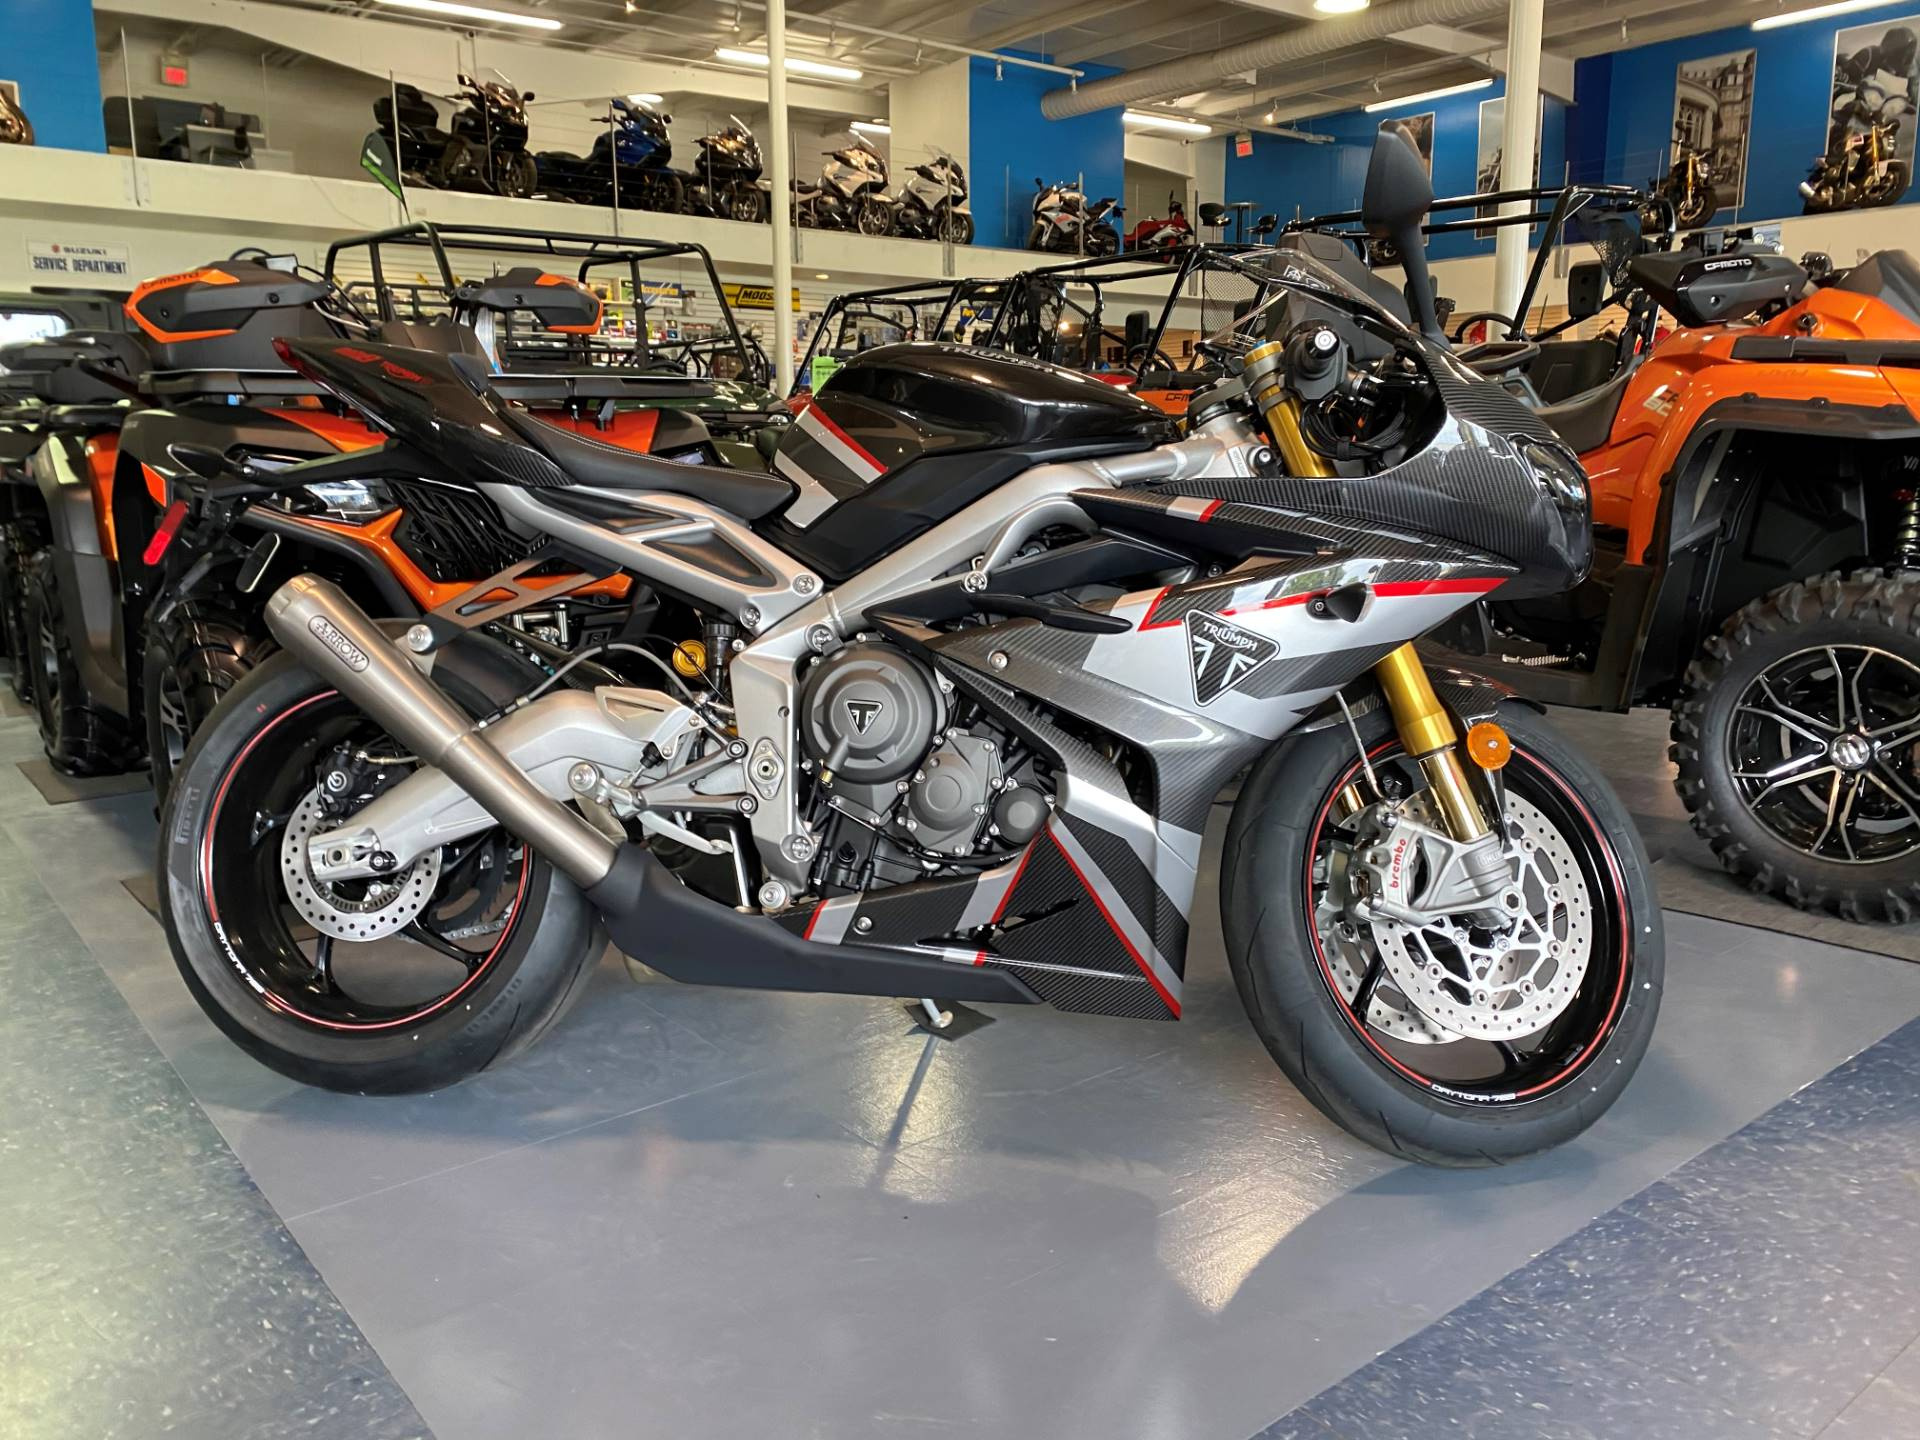 2020 Triumph Daytona Moto 2 Limited Edition in Iowa City, Iowa - Photo 1